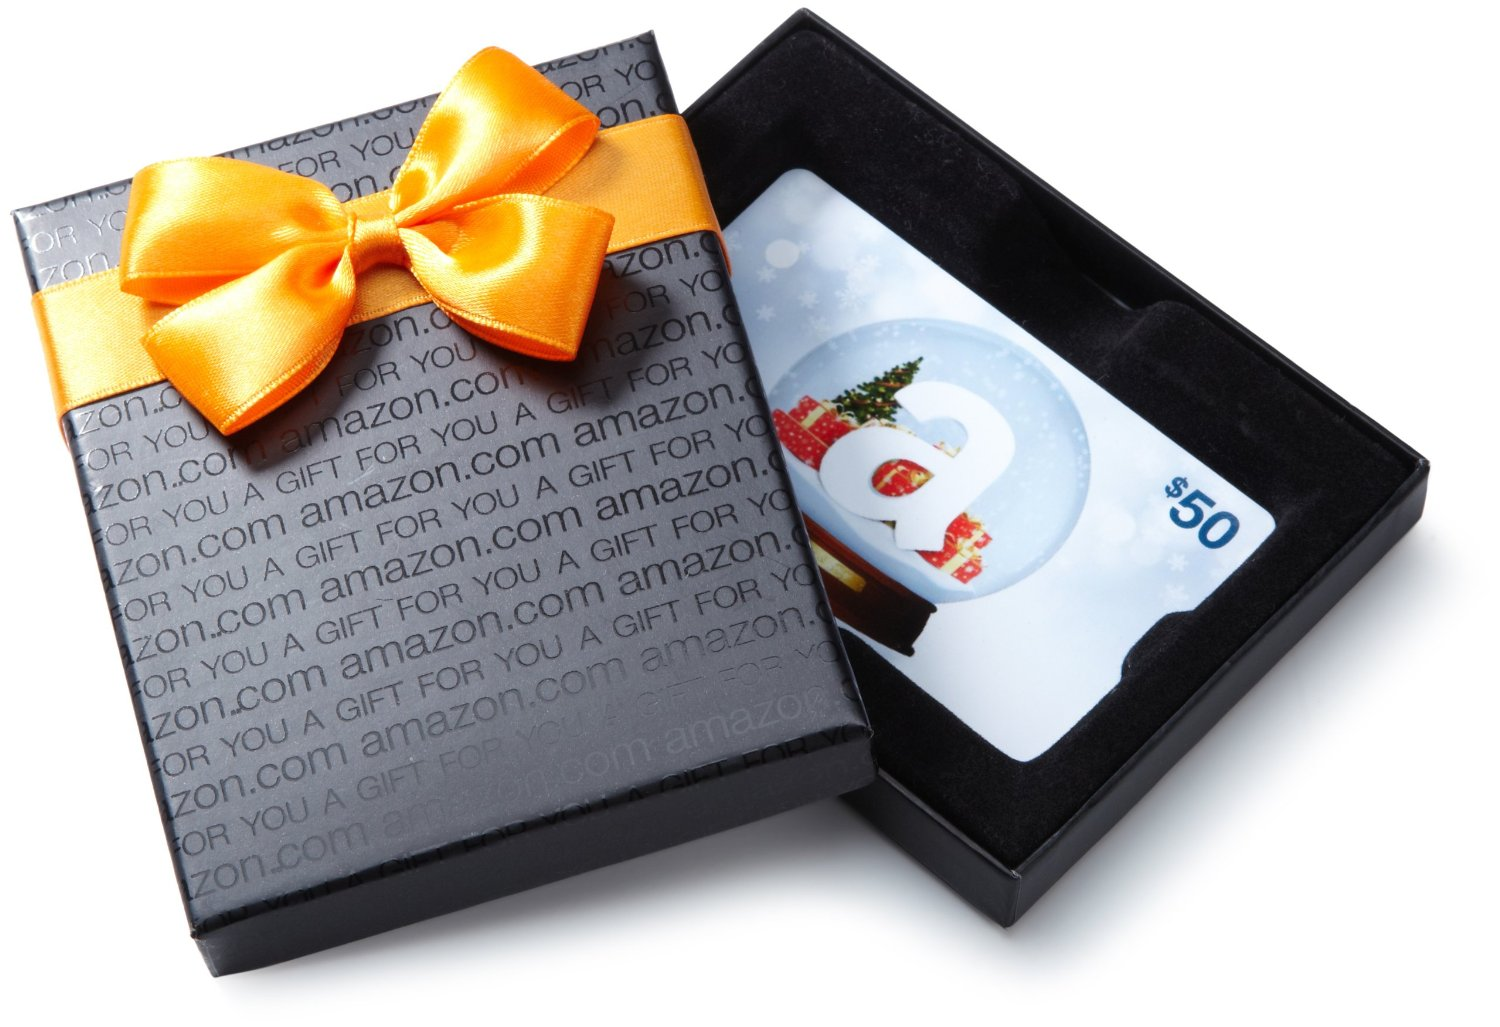 amazon-com-gift-card-in-a-black-gift-box